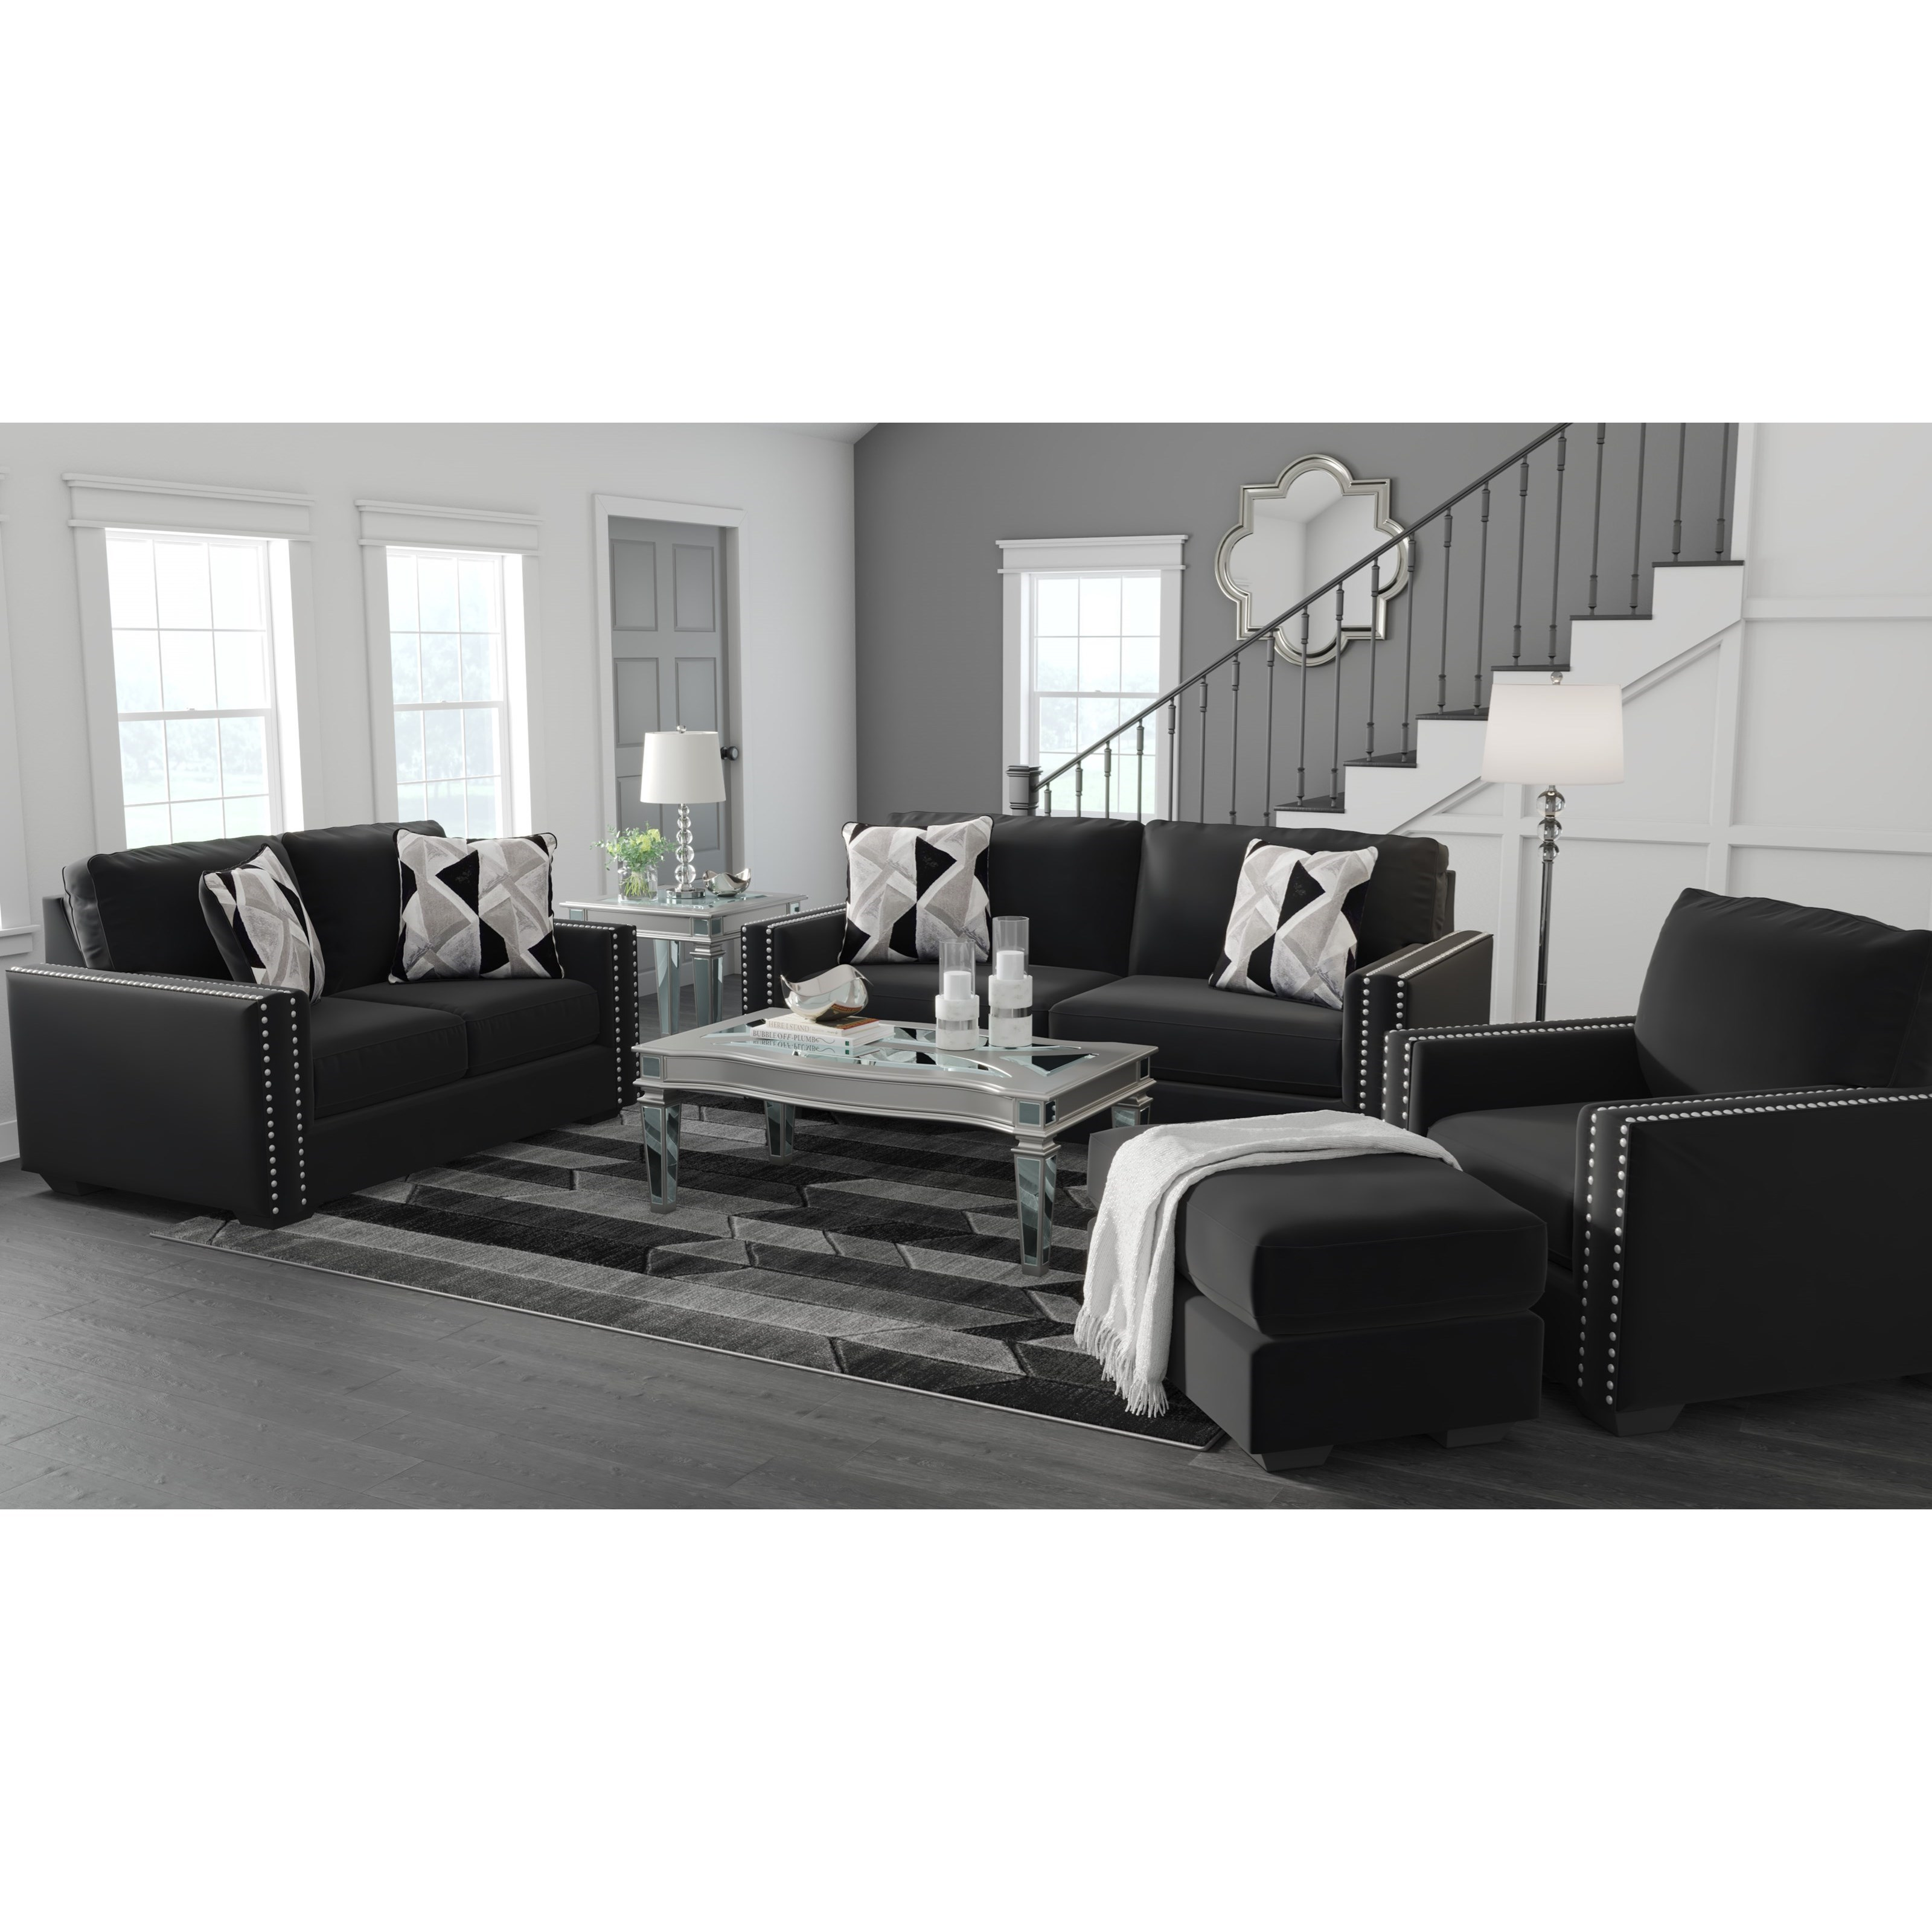 Gleston Living Room Group by Signature Design by Ashley at Smart Buy Furniture